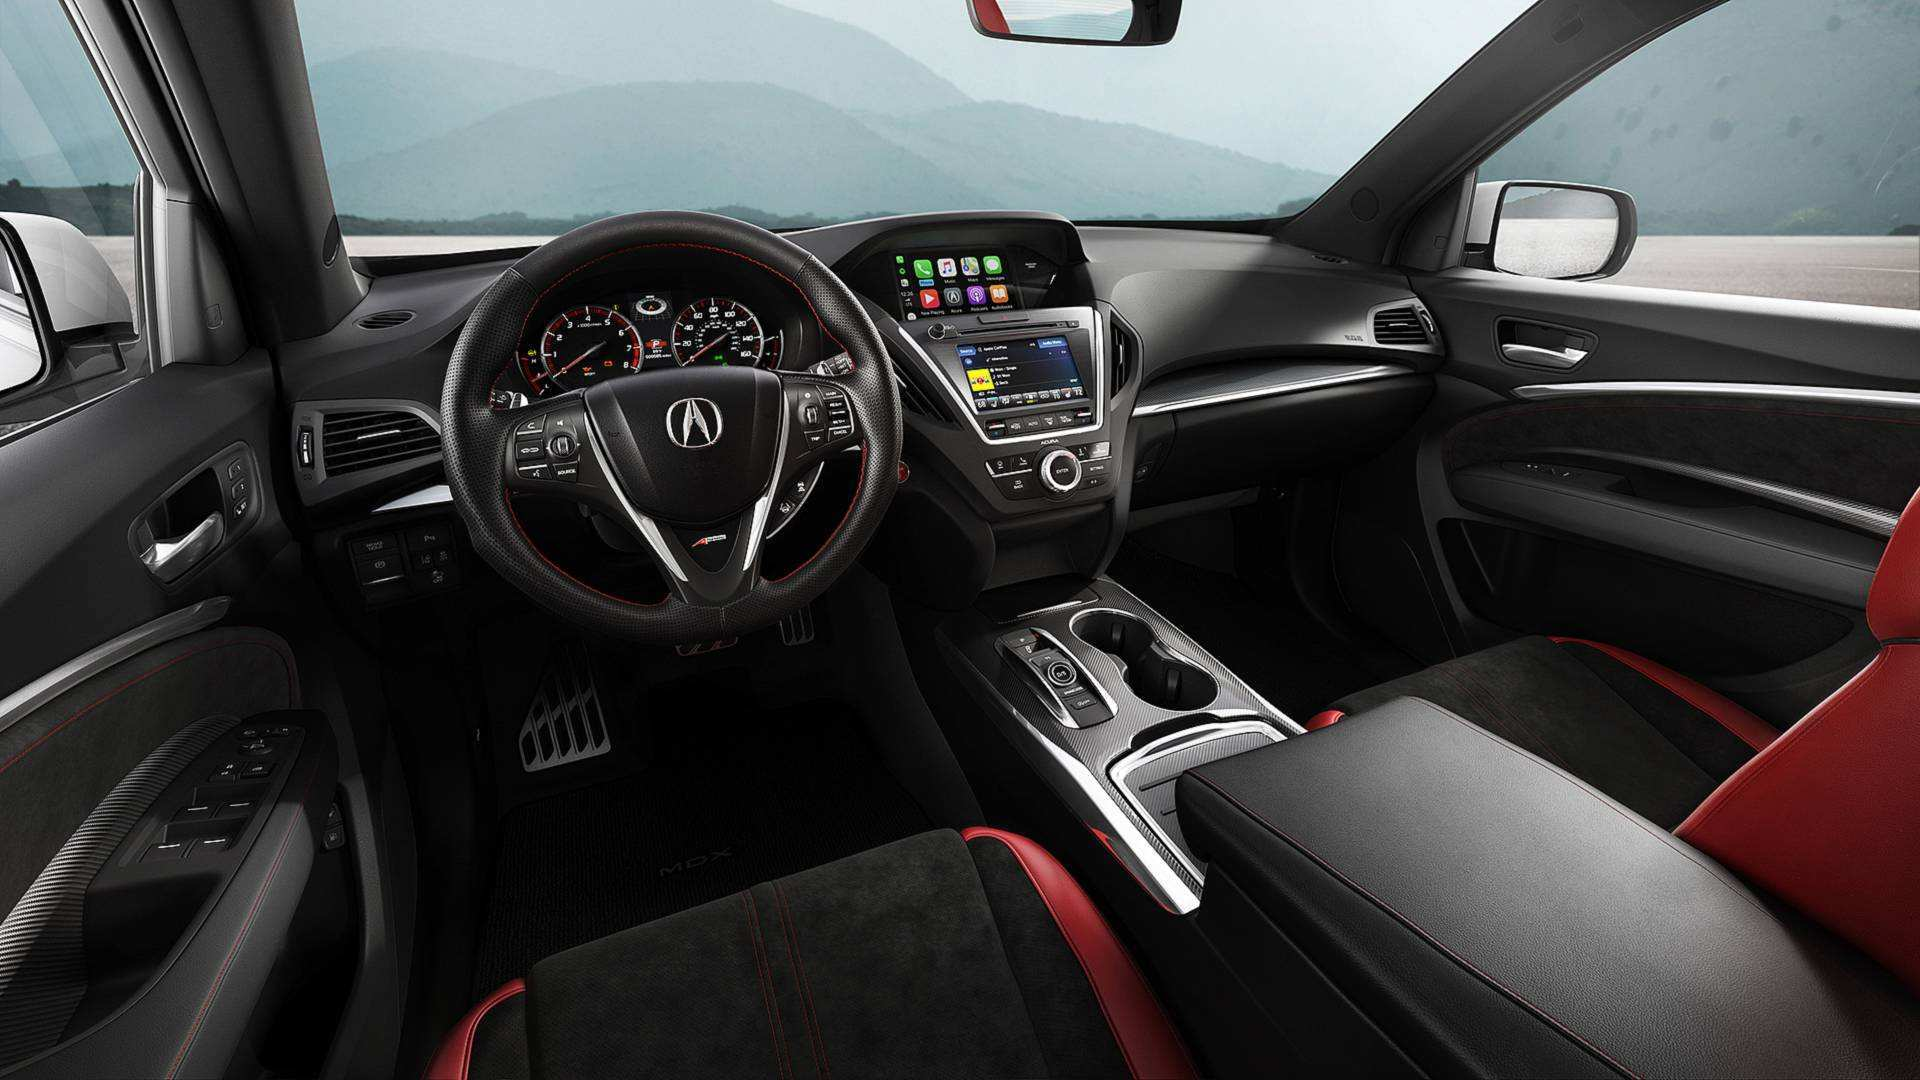 22 The 2020 Acura Mdx Interior Images by 2020 Acura Mdx Interior